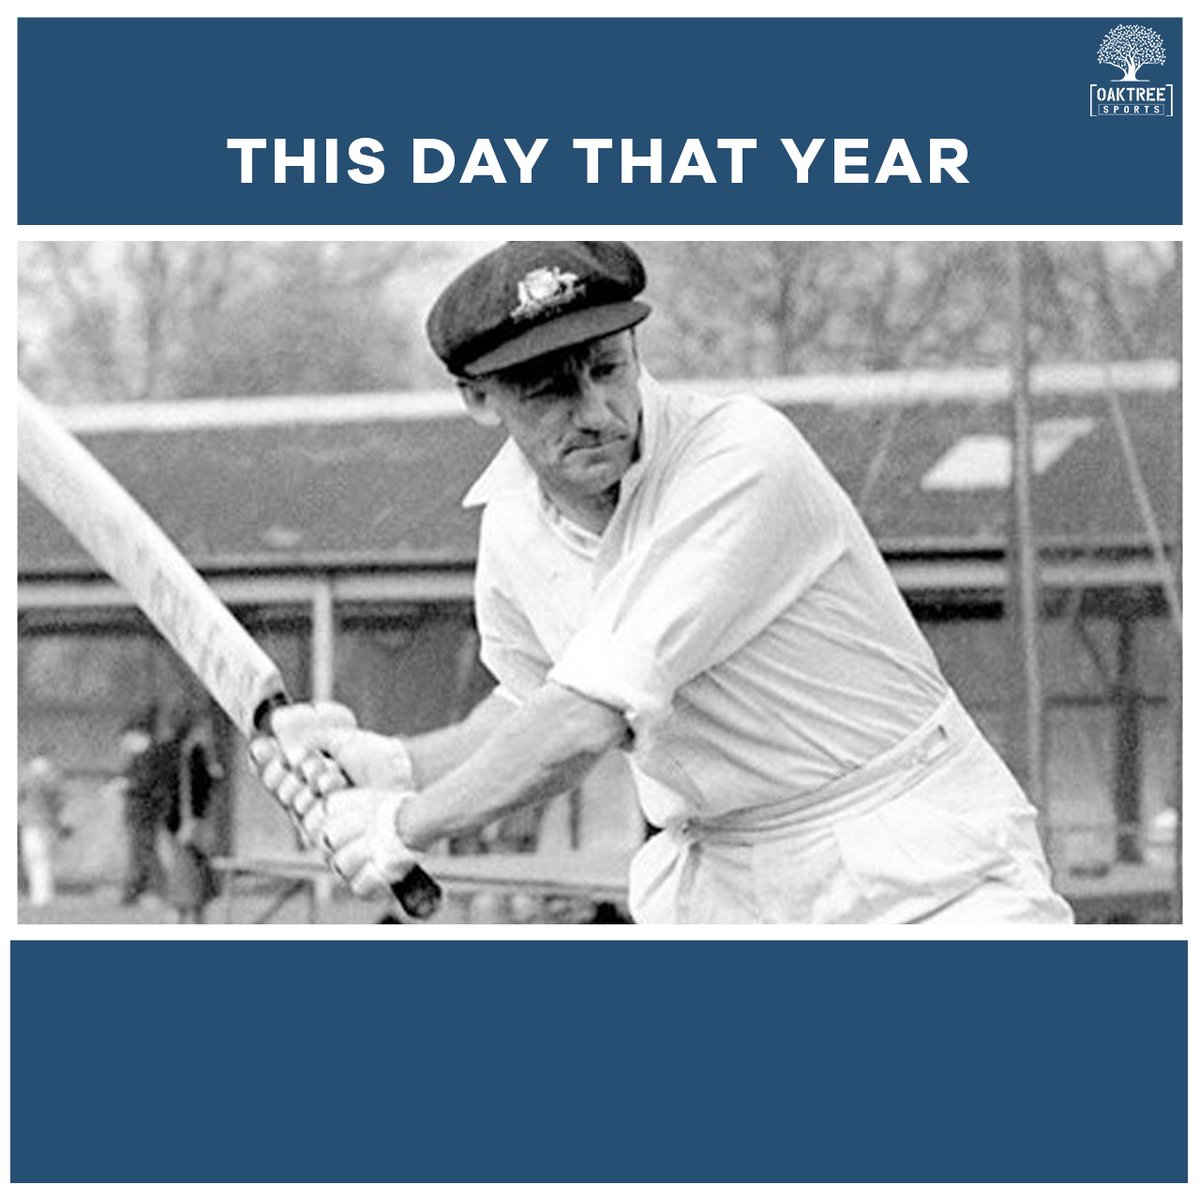 #OnThisDay in 1930, the legendary Sir Don Bradman scored 300 runs in a single day's play! Nobody has done it before or since.  #ThisDayThatYear #DonBradman #TripleHundred #TestCricket #OaktreeSports<br>http://pic.twitter.com/WpYcqIX2Vq